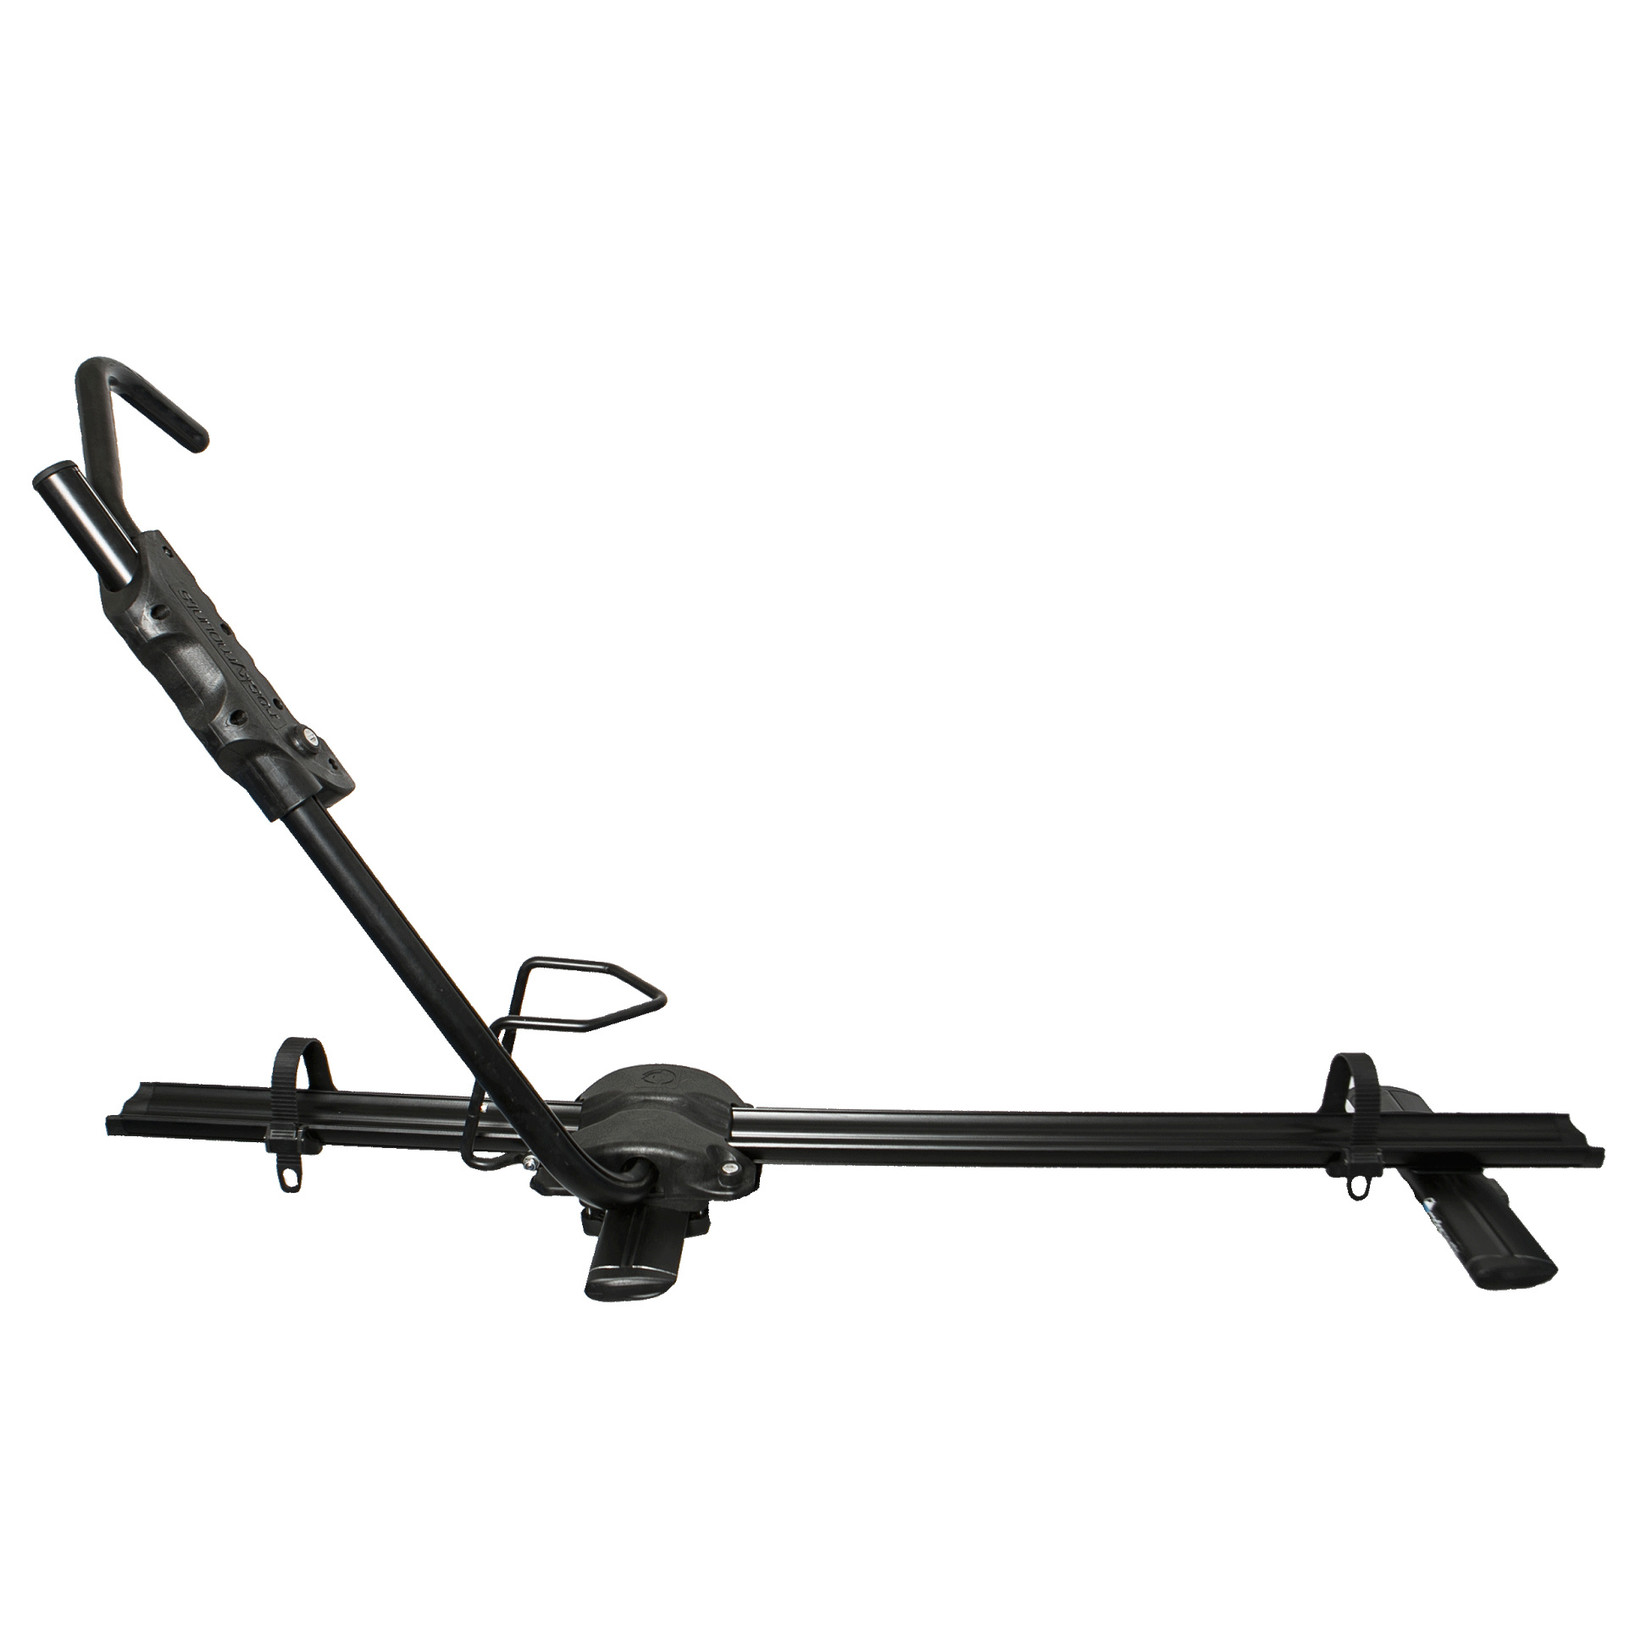 Rockymounts Rocky Mounts Tomahawk Roof Rack Tray